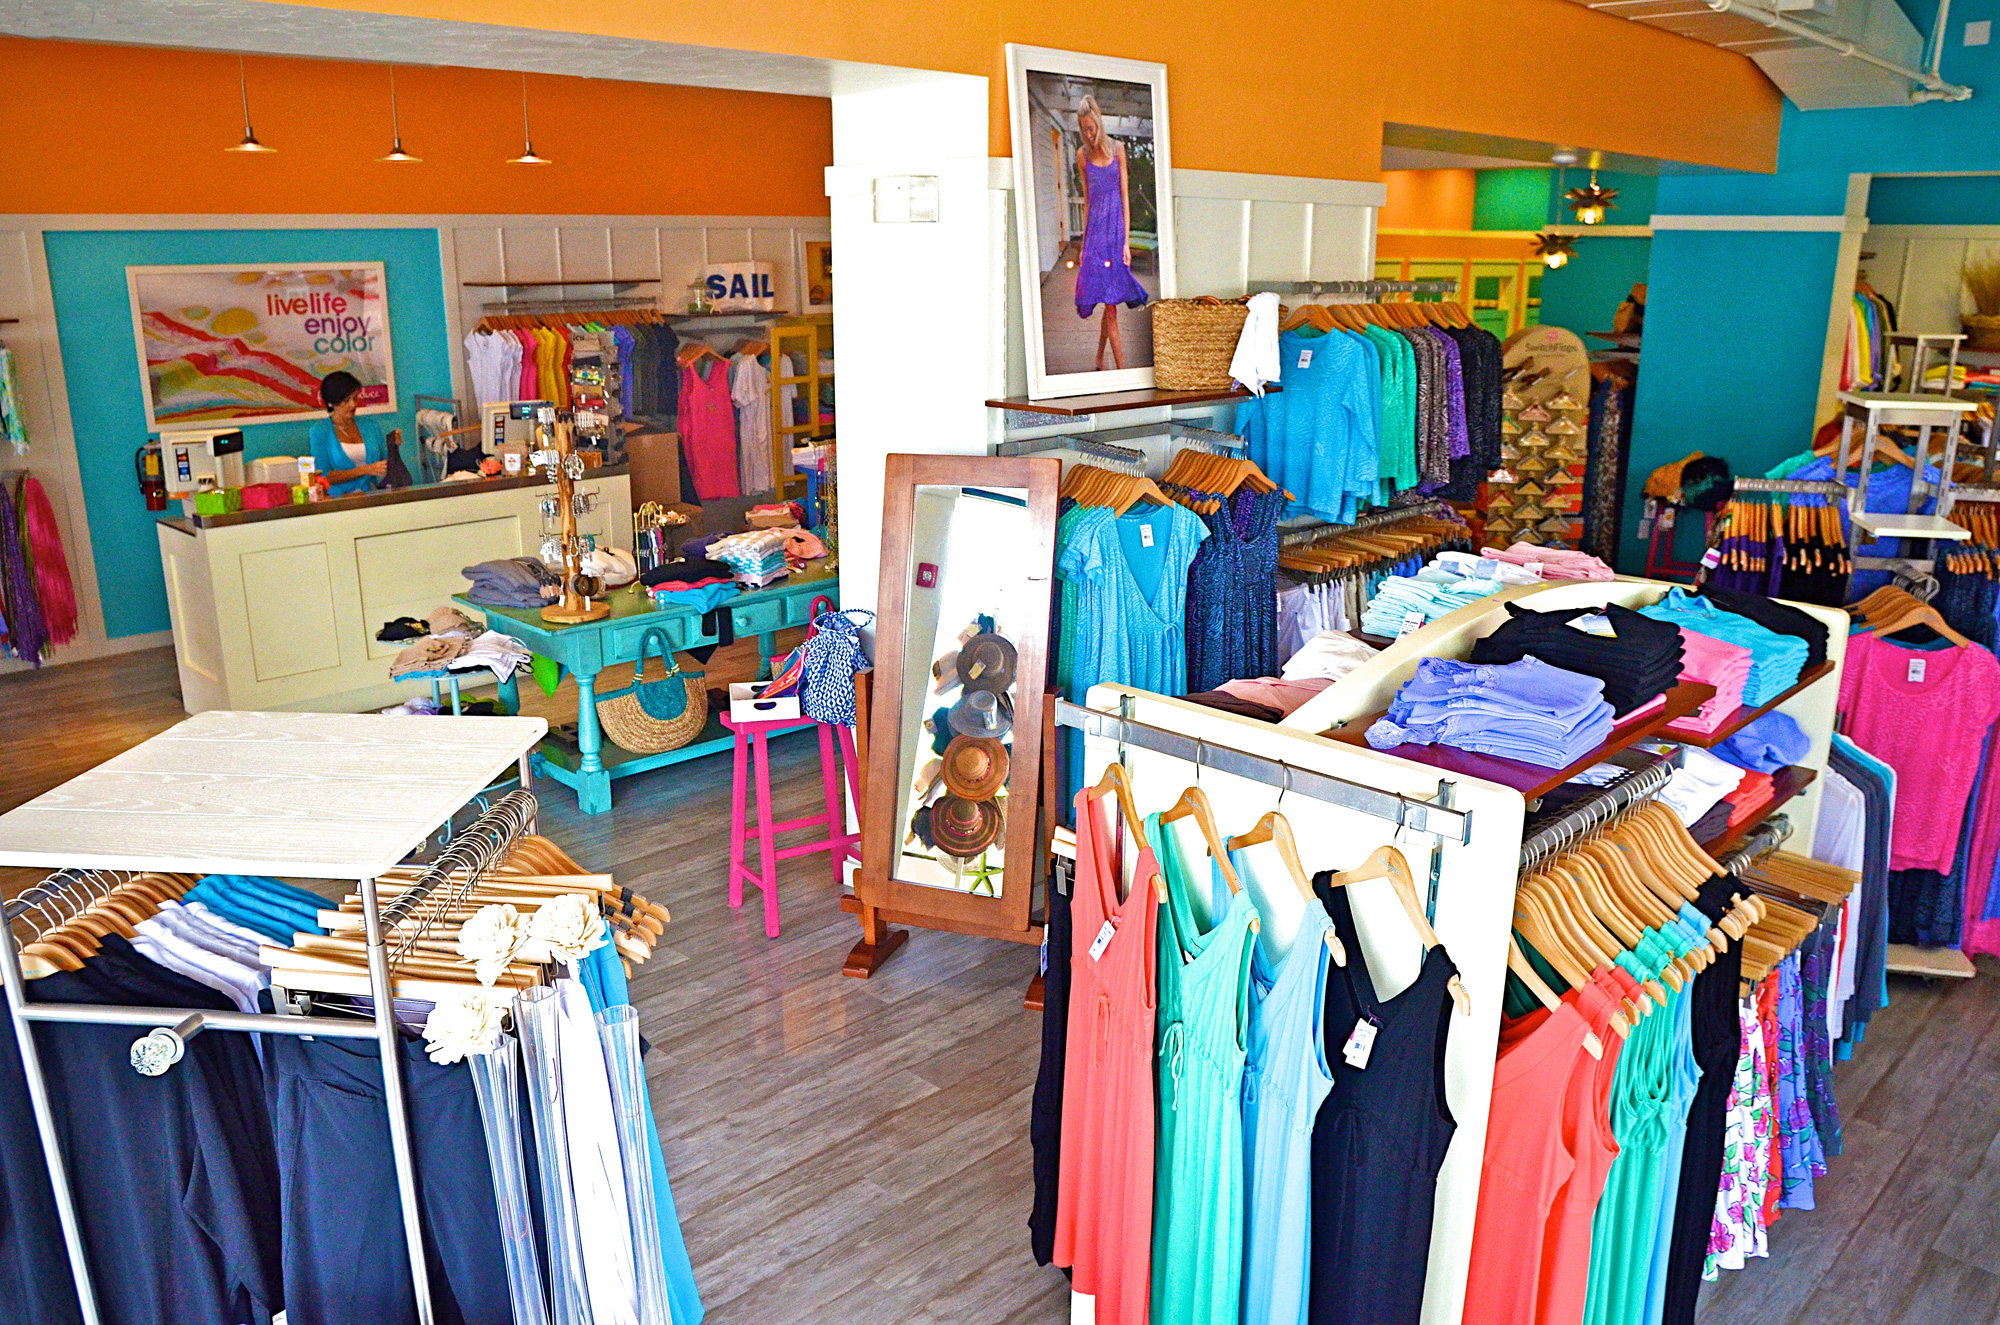 The Mint Julep Boutique is your one-stop shop for dresses, shoes, and all things fashion related. New styles arrive twice daily. Visit our New Arrivals to shop now! Flawless Style. Impeccable service. Always within reach. The Mint Julep Boutique is your one-stop shop for dresses, shoes, and all things fashion .